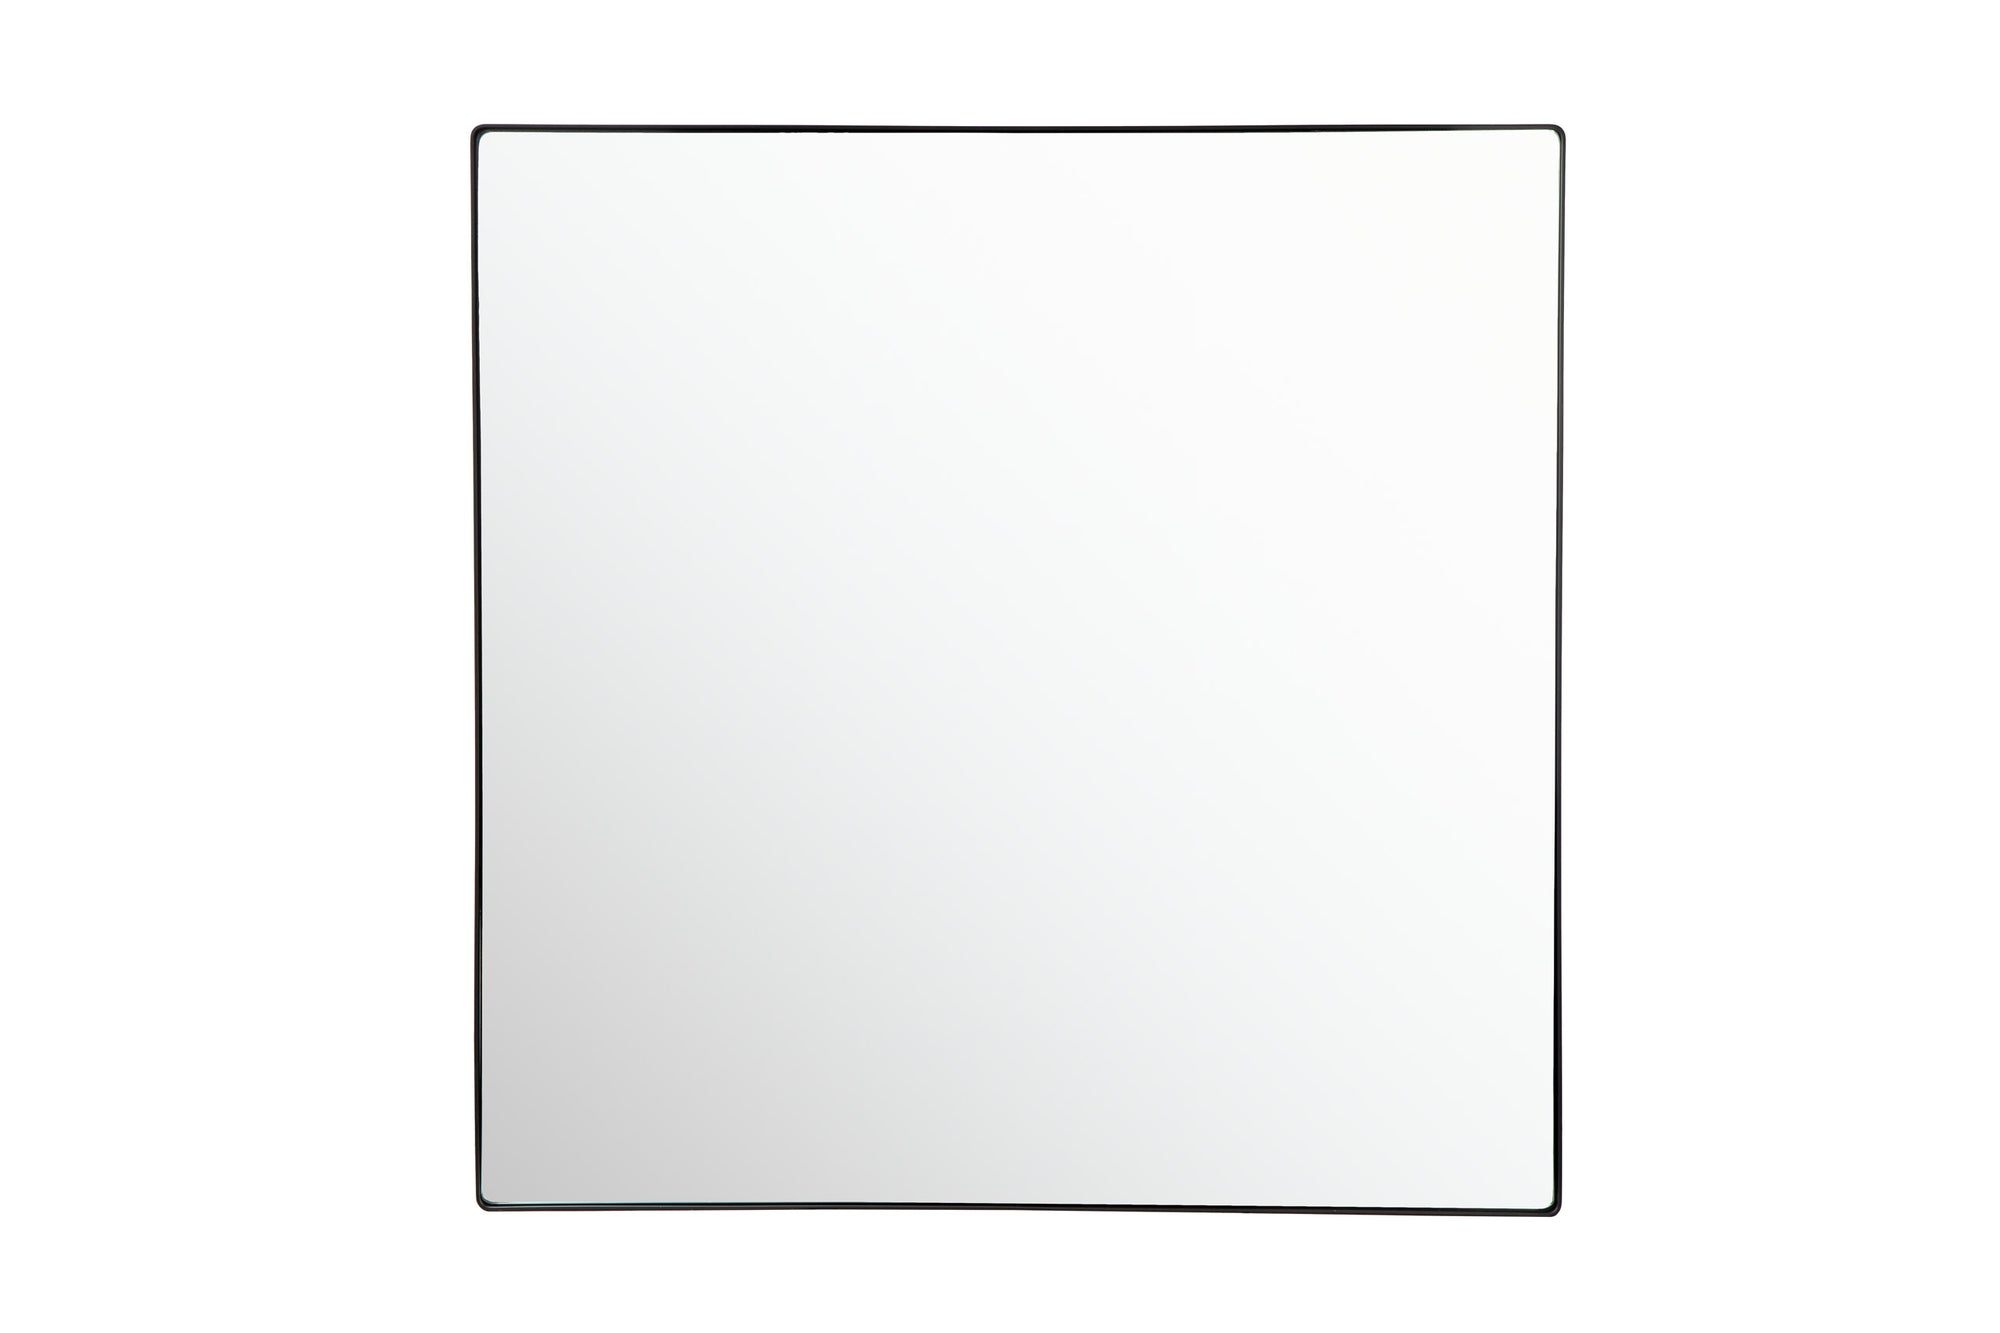 Kye 407A06BL 40x40 Rounded Square Mirror - Black